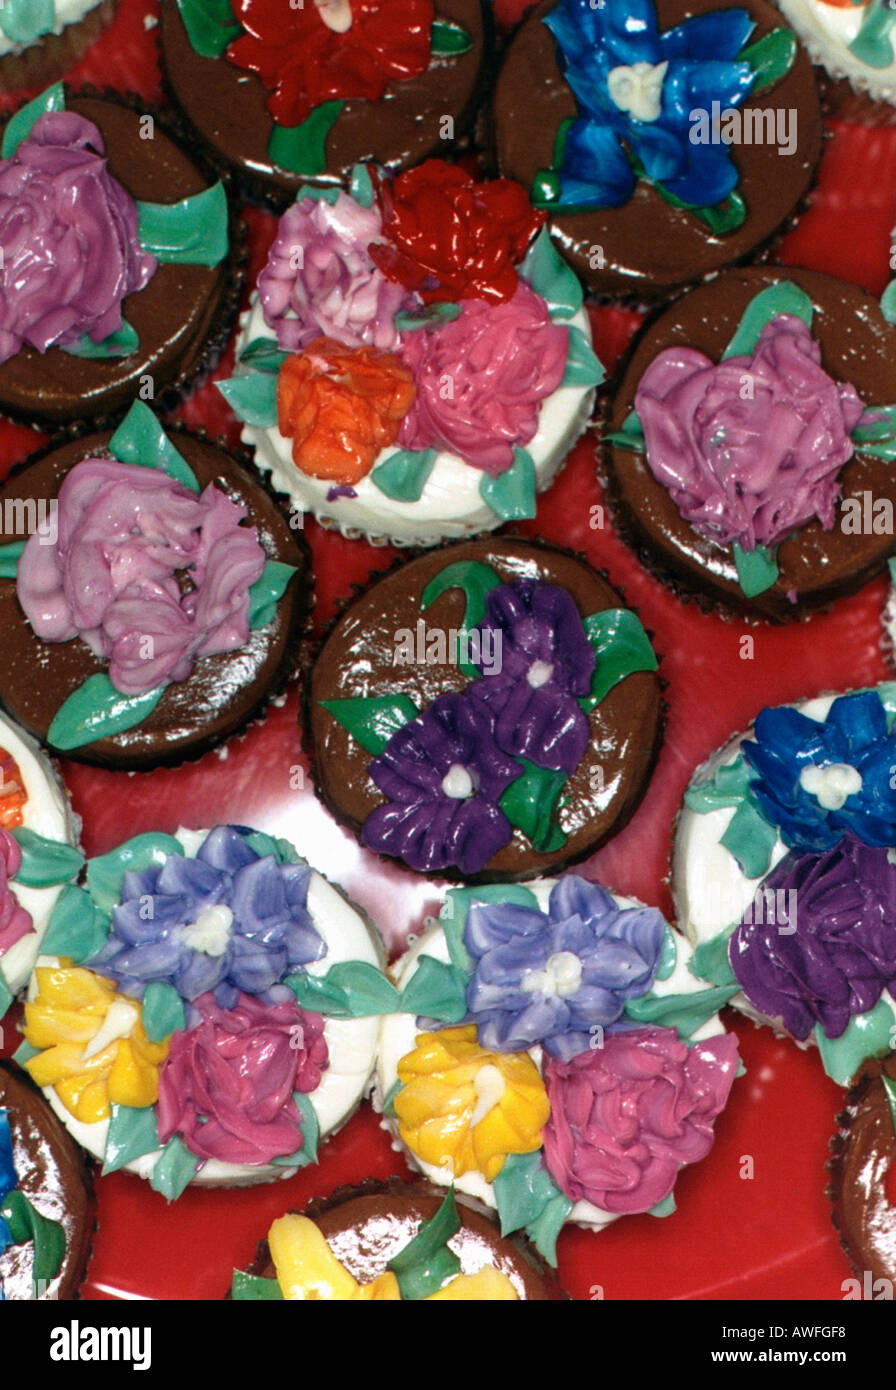 Still Life of Gourmet Cupcakes Decorated with Buttercream Frosting ...